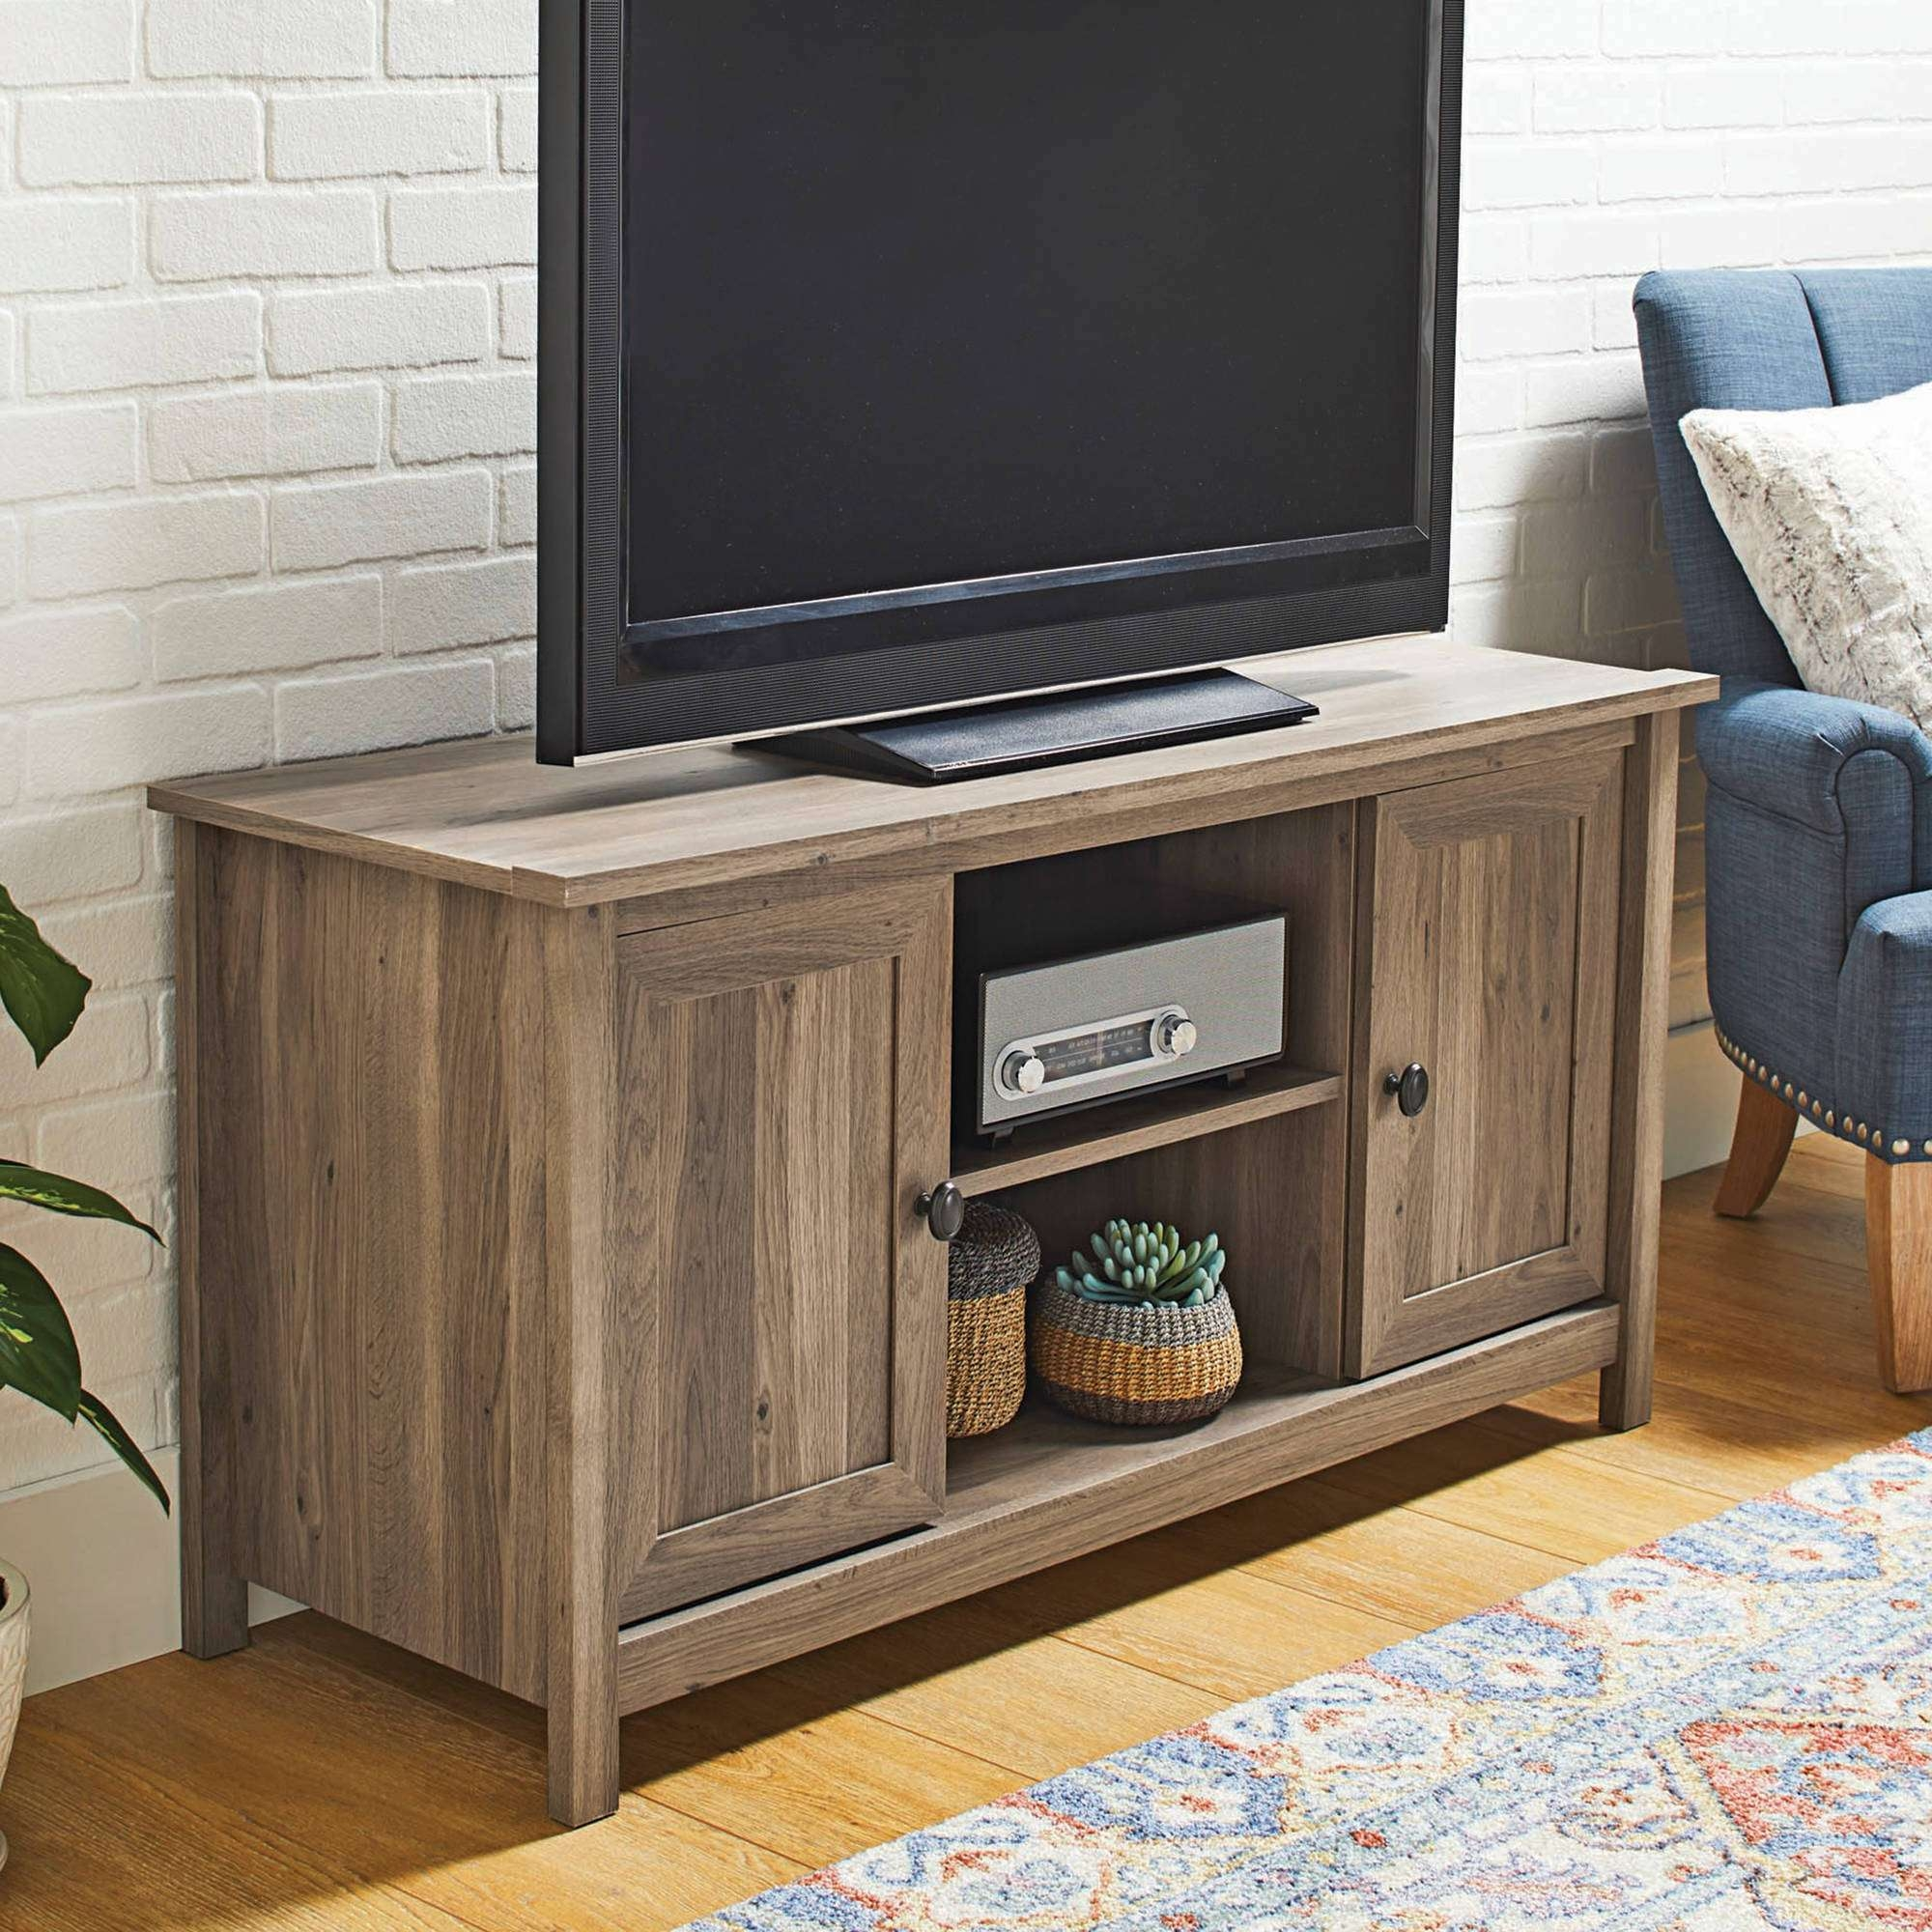 Tv : Amazing Maple Tv Stands Adrian Gray Maple Tv Stand For Tvs Up In Maple Tv Stands (View 16 of 20)